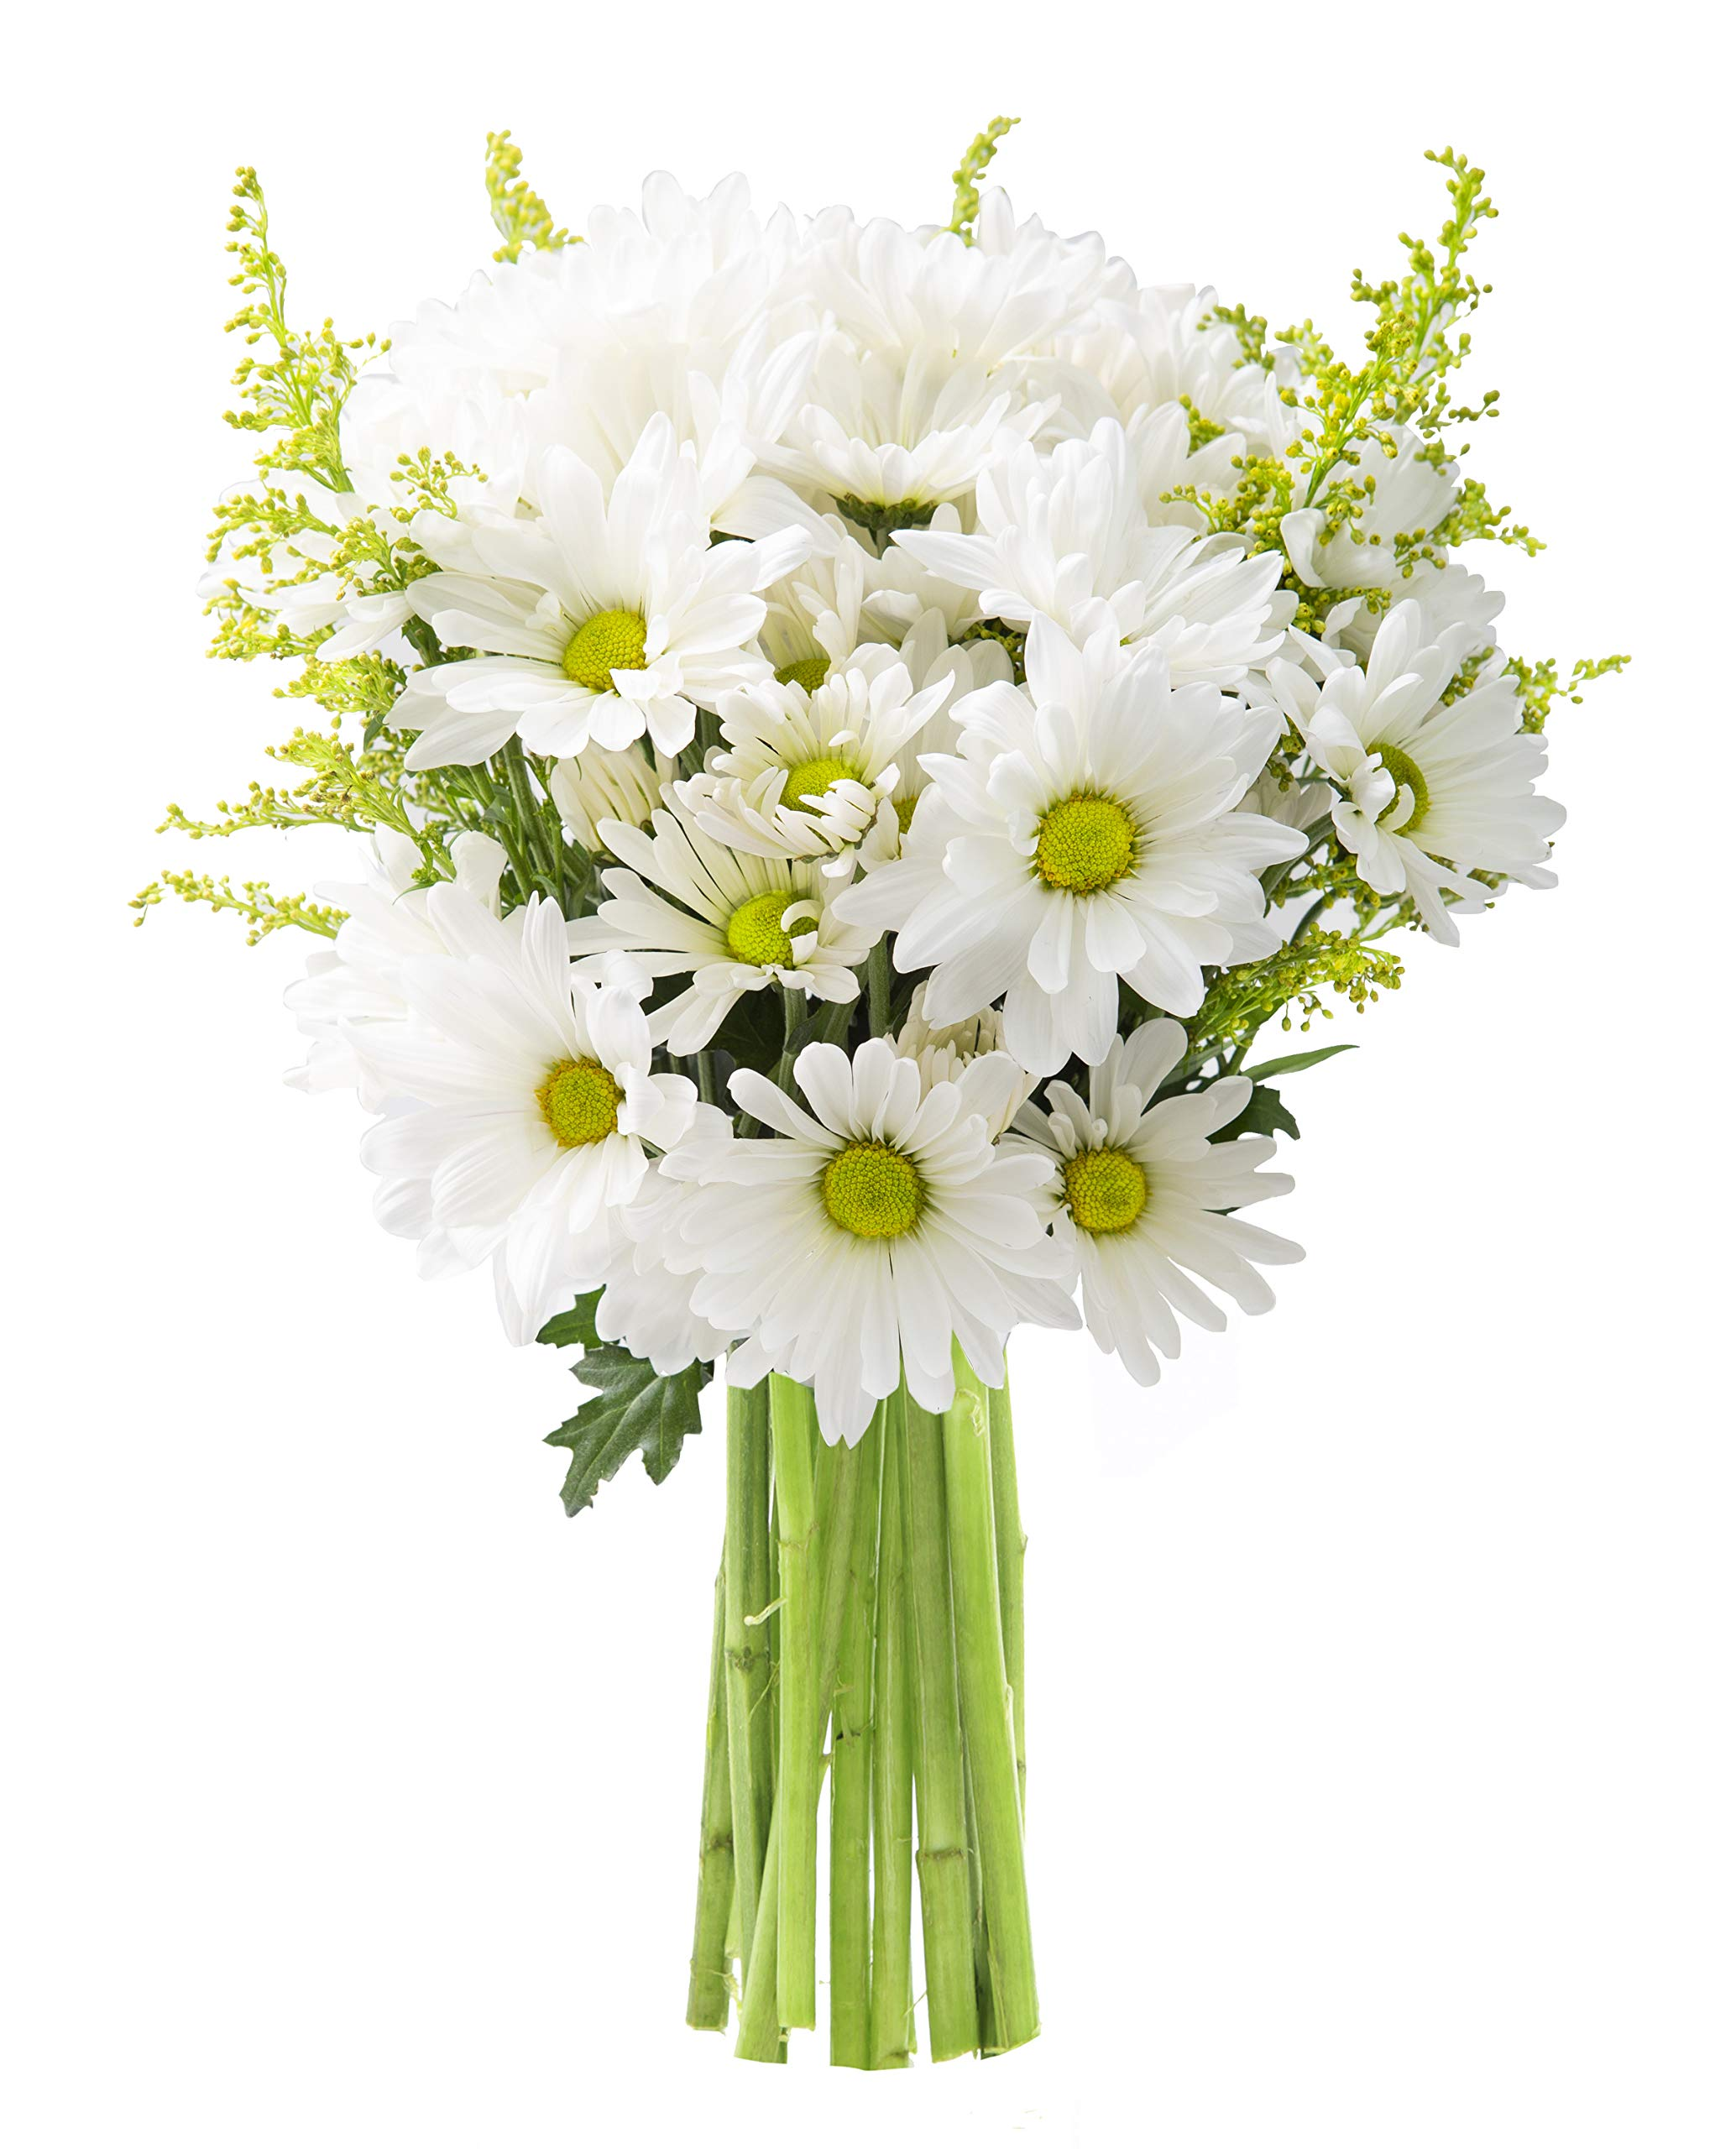 KaBloom Bountiful Beauty Bouquet of Fresh White Daisies by KaBloom